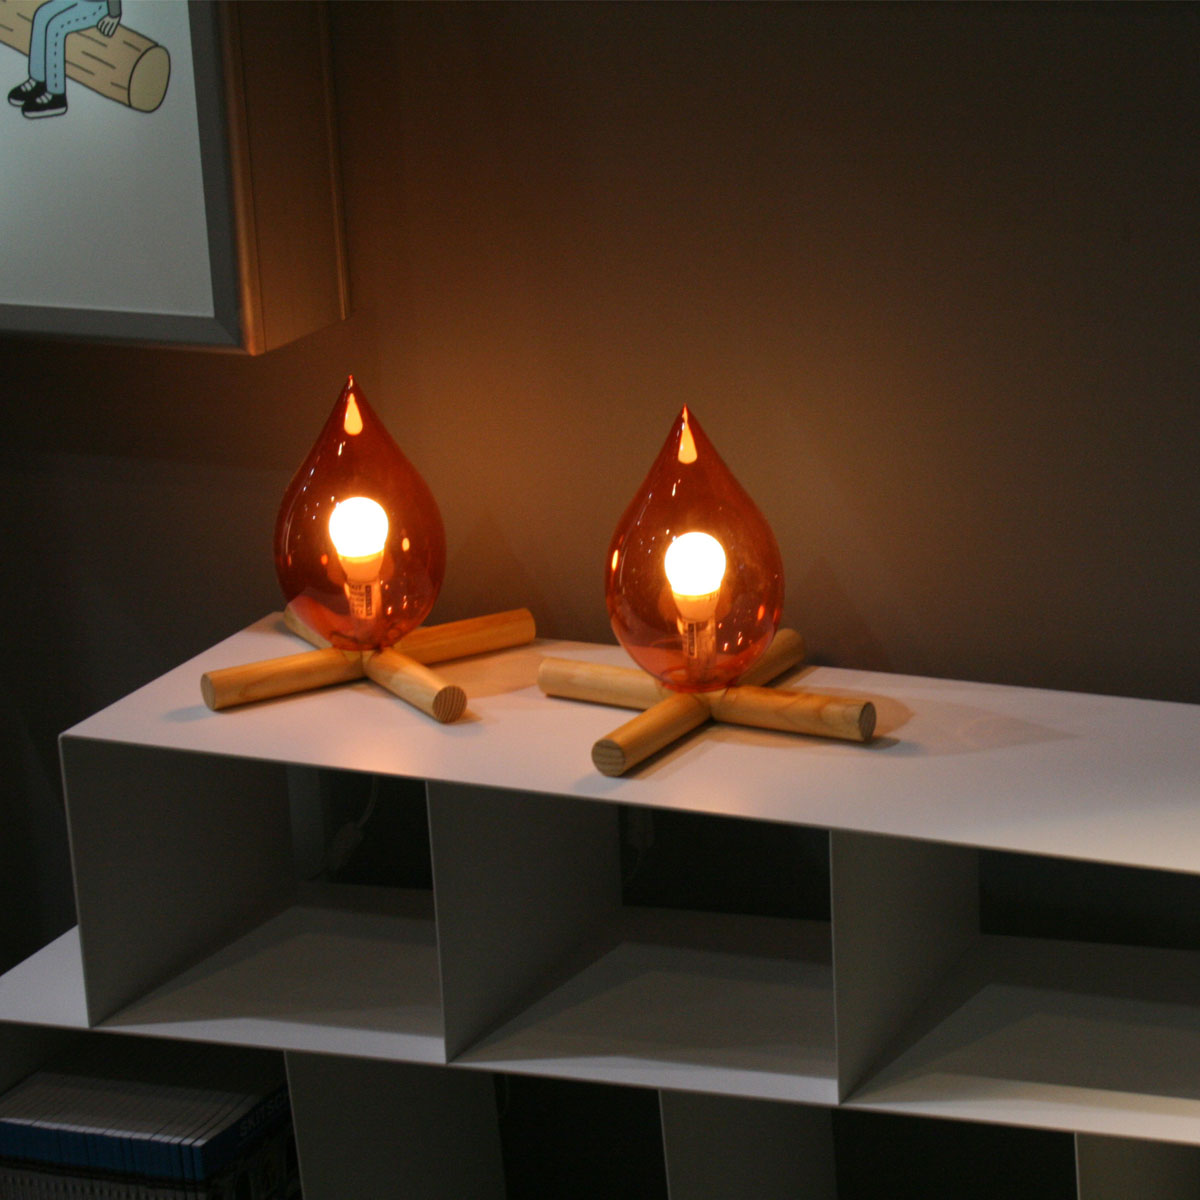 awesome-design-ideas-Fire-Kit-Lamp-by-Skitsch-3